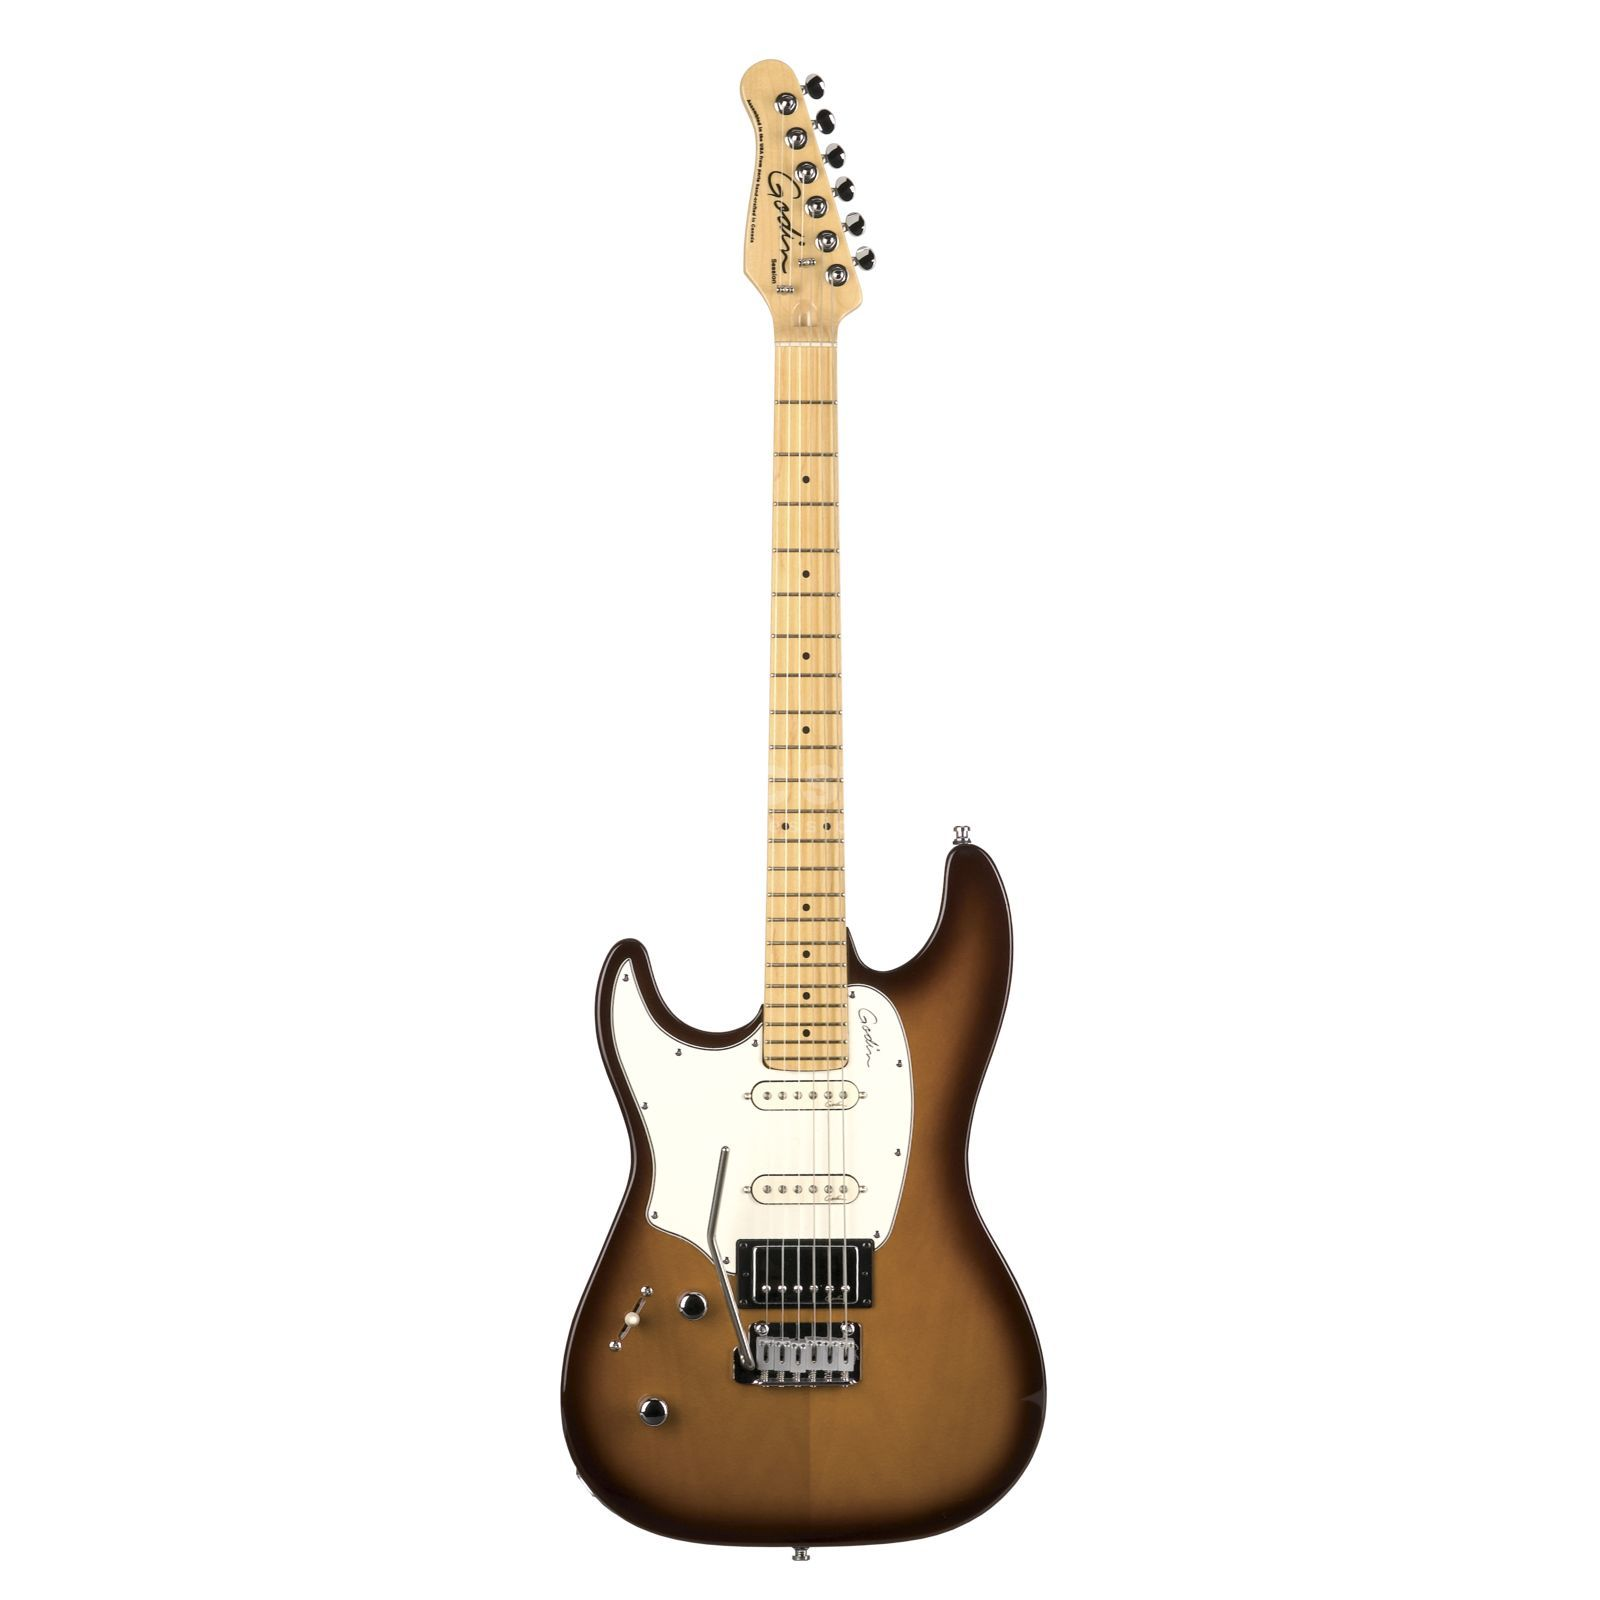 Godin Session Lefthand MF HG LB Lightburst Produktbild